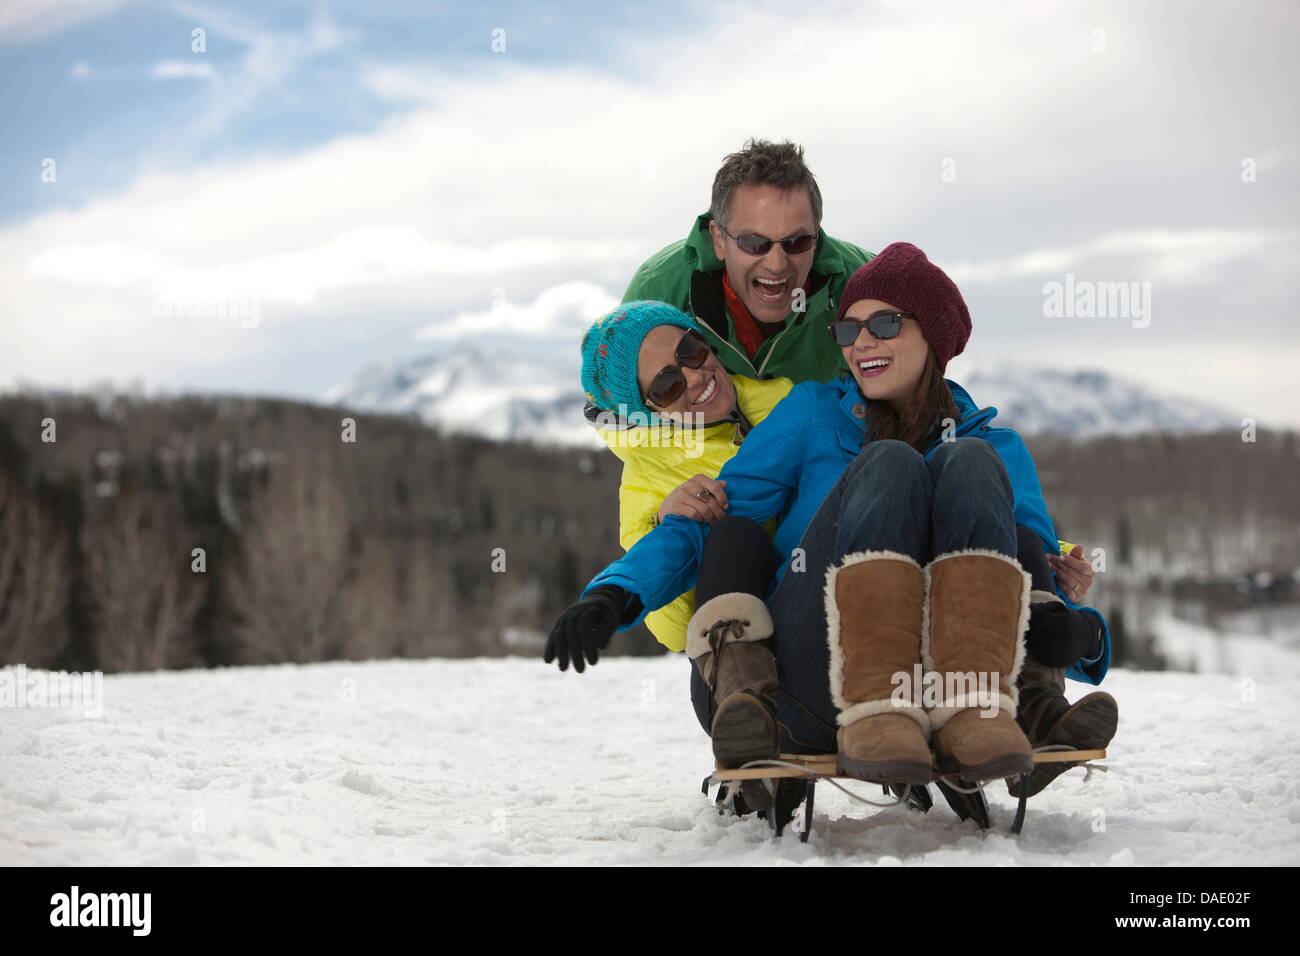 Three friends sitting on sledge in snow Stock Photo